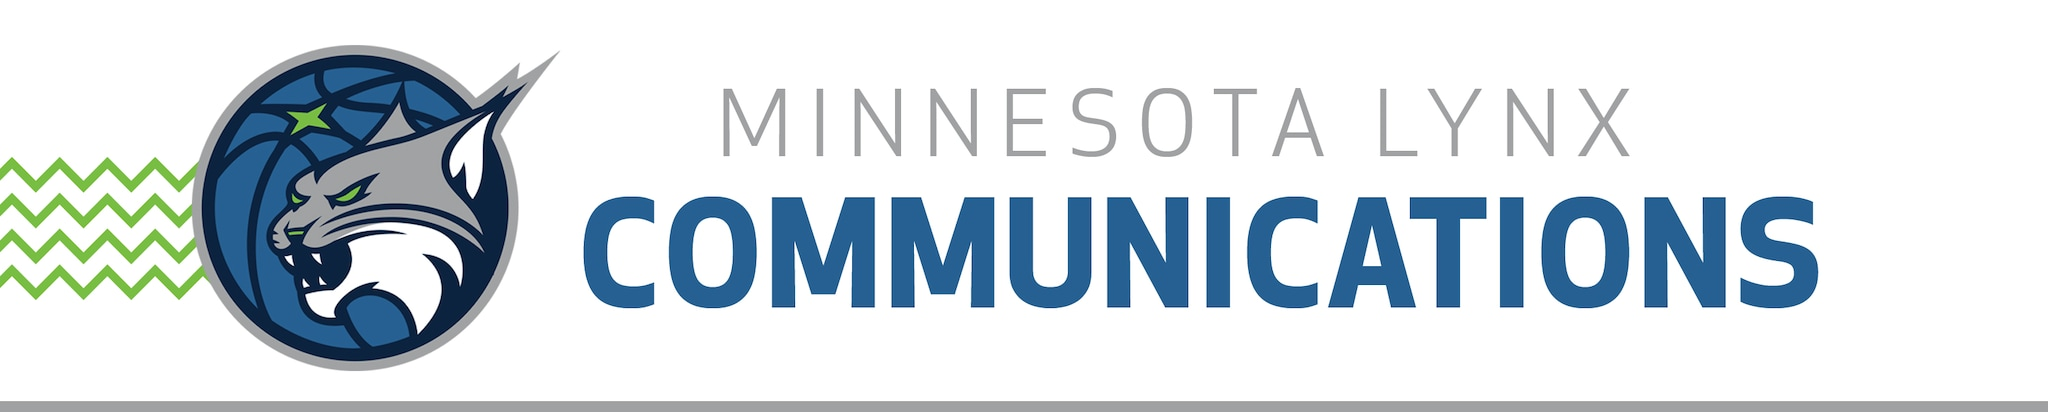 Minnesota Lynx Communications